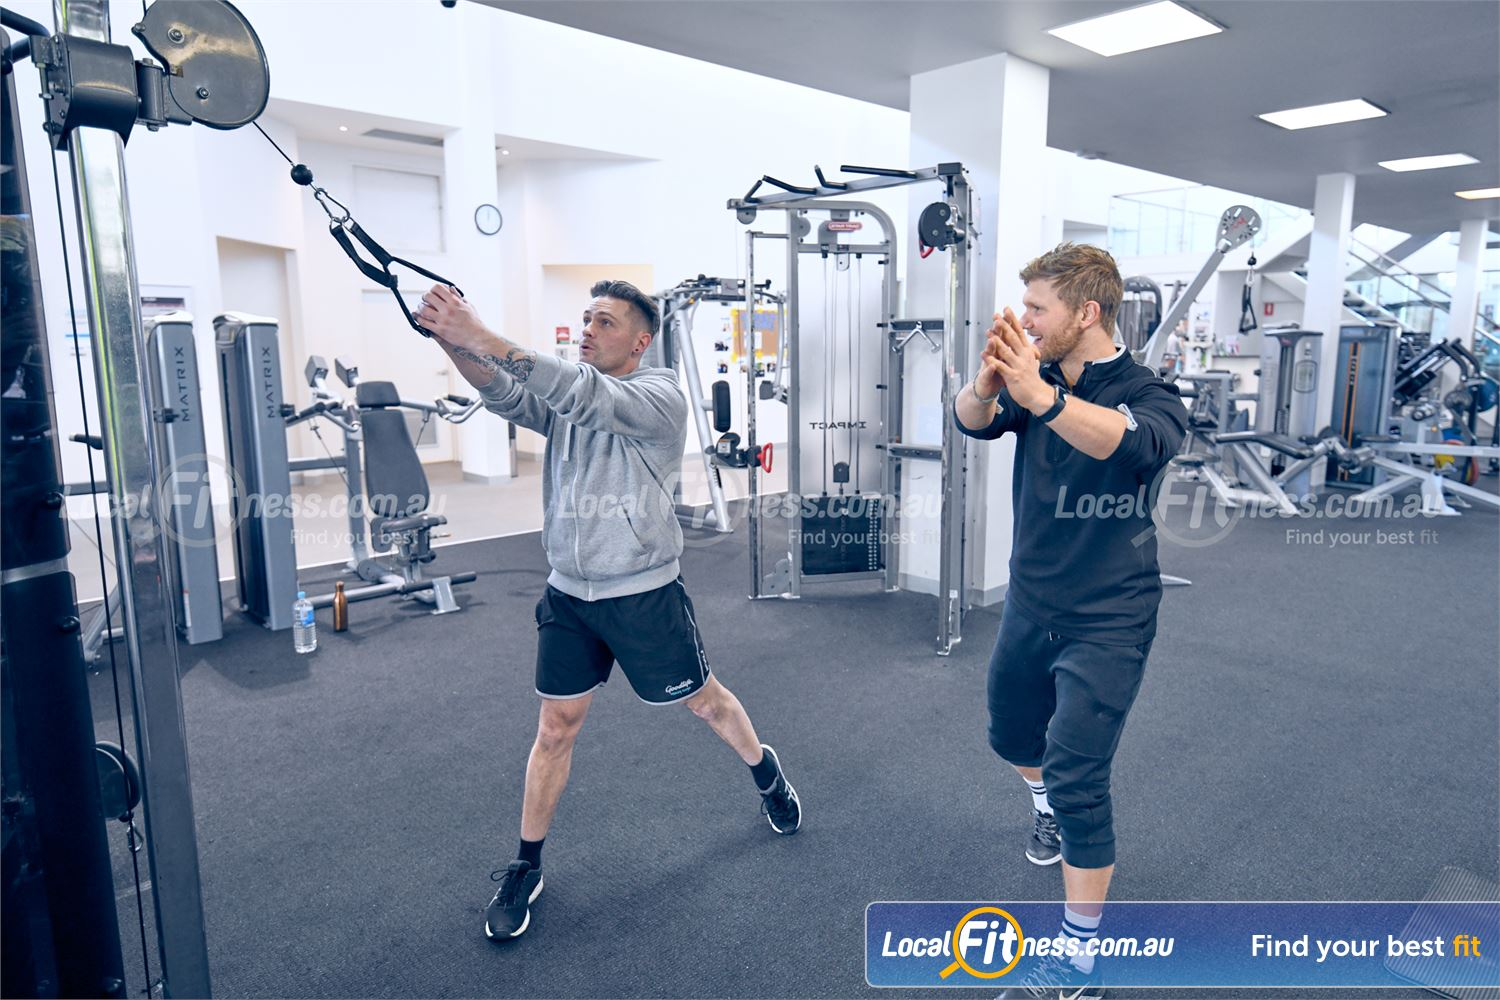 Goodlife Health Clubs Near Ashwood Our Glen Iris gym team can help you with your strength training goals.